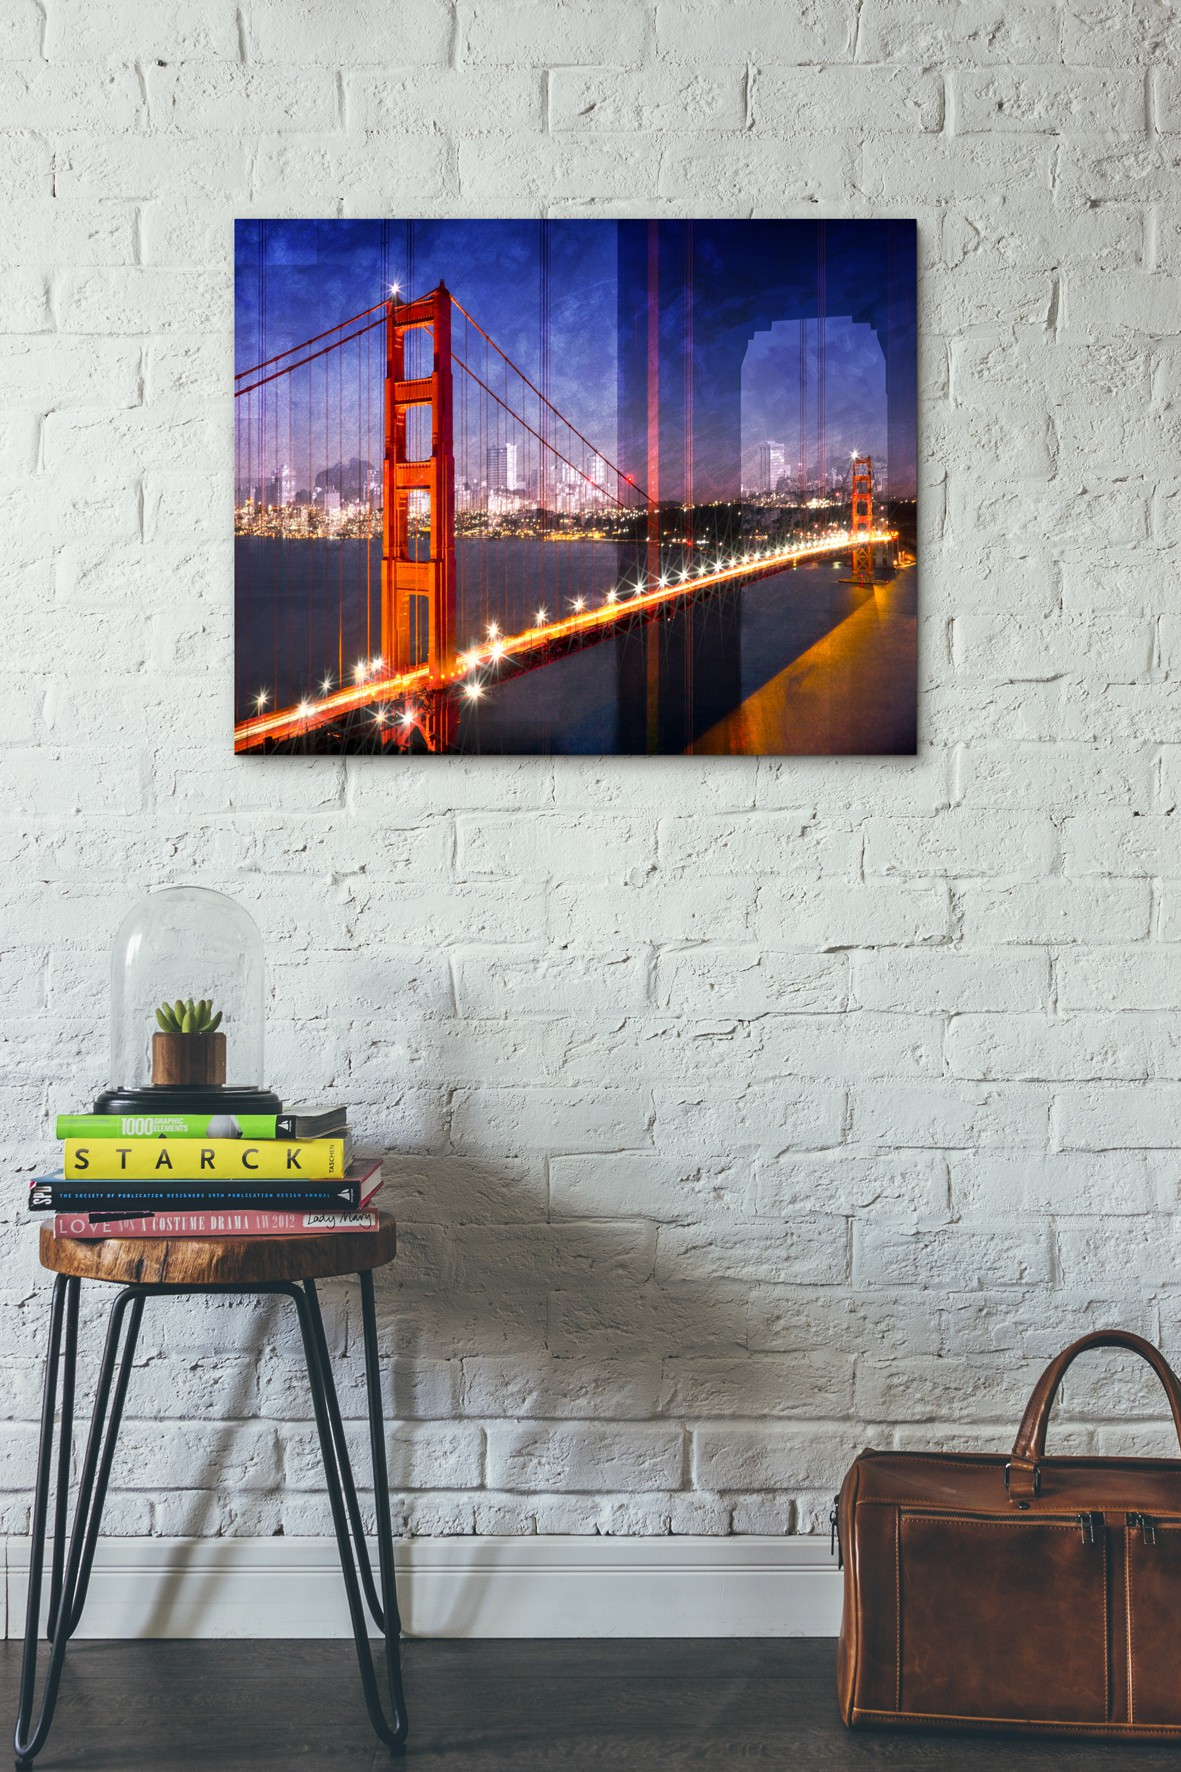 City Art Golden Gate Bridge Composing - Pixels.com Onlineshop